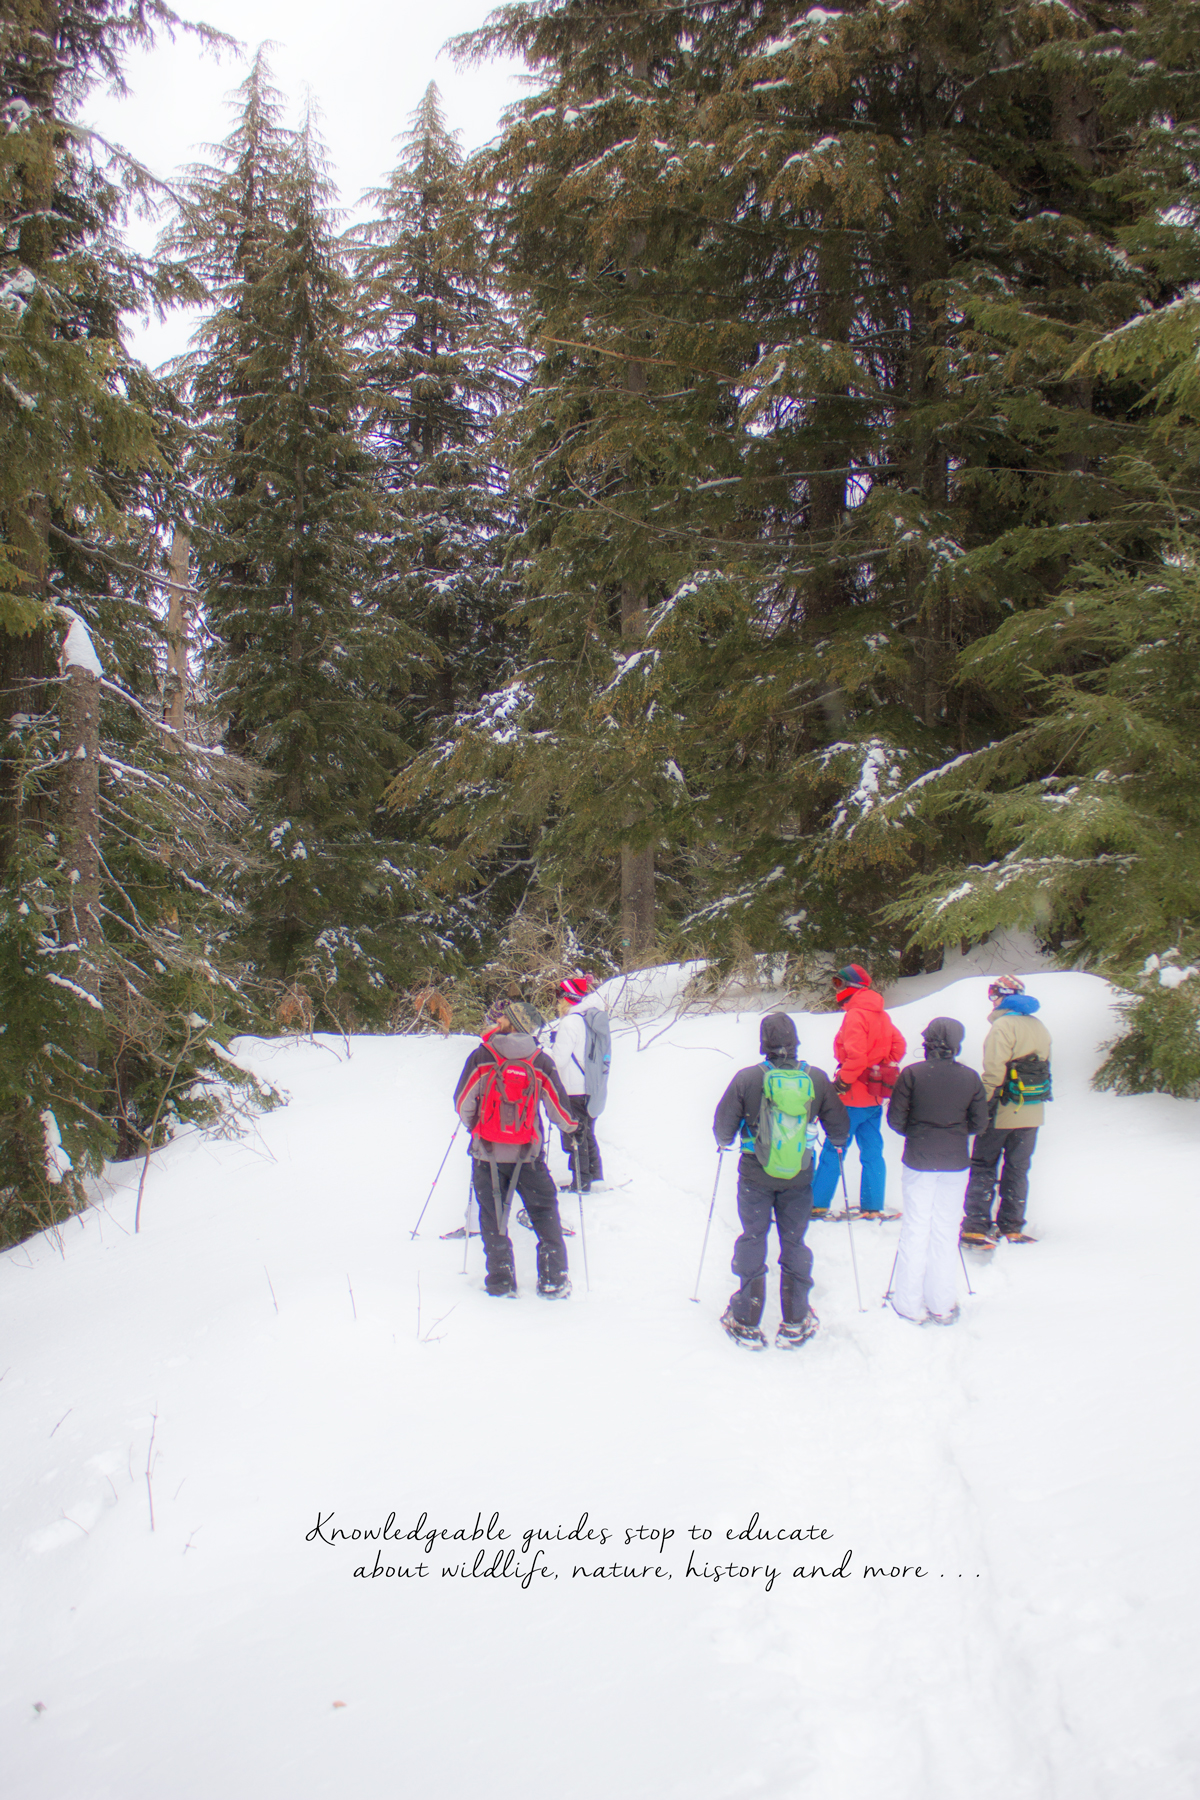 Guided Snowshoe Hike and Fondue Dinner at Schweitzer Mountain Resort in Idaho via J5MM.com